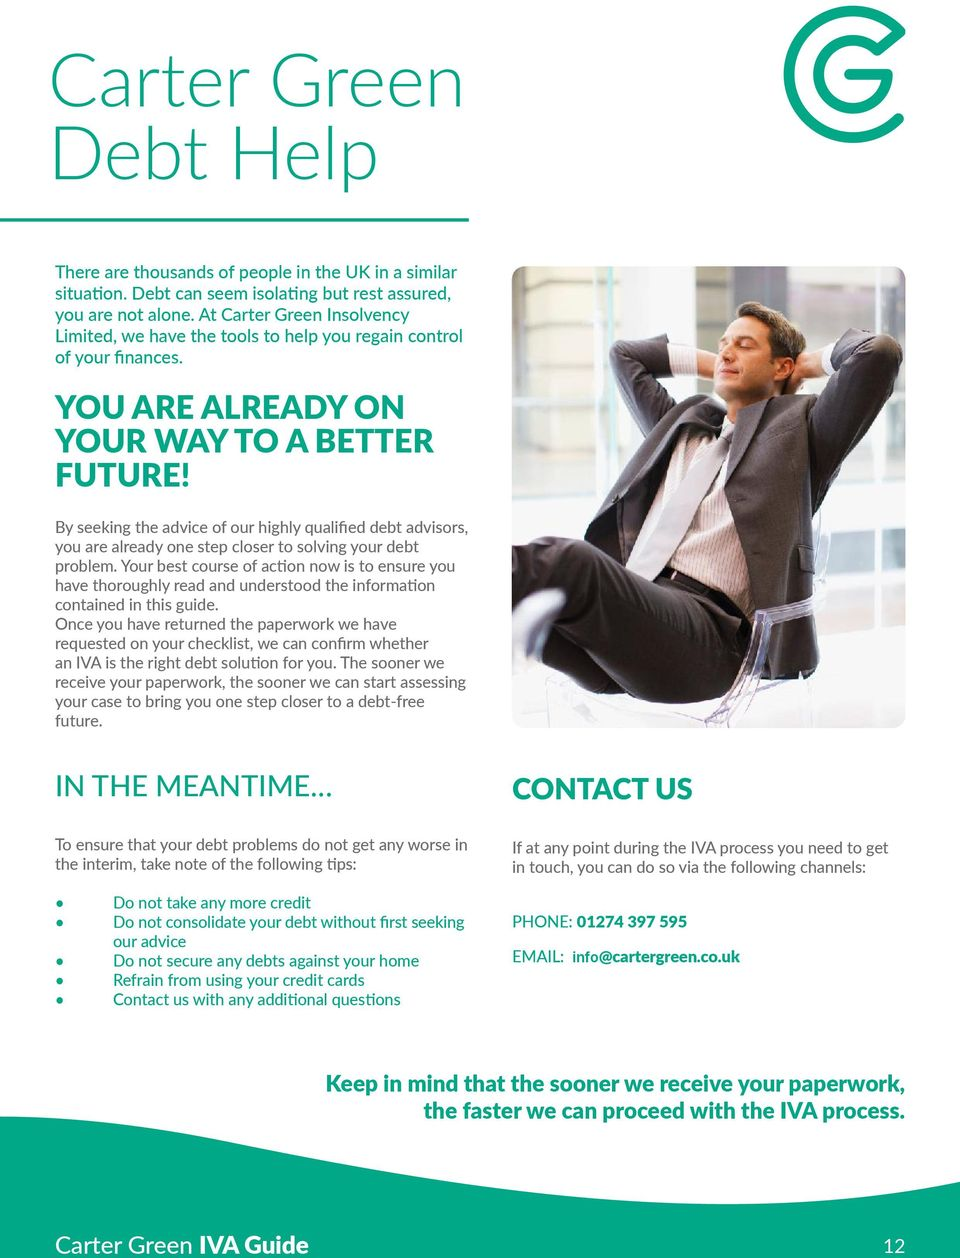 By seeking the advice of our highly qualified debt advisors, you are already one step closer to solving your debt problem.